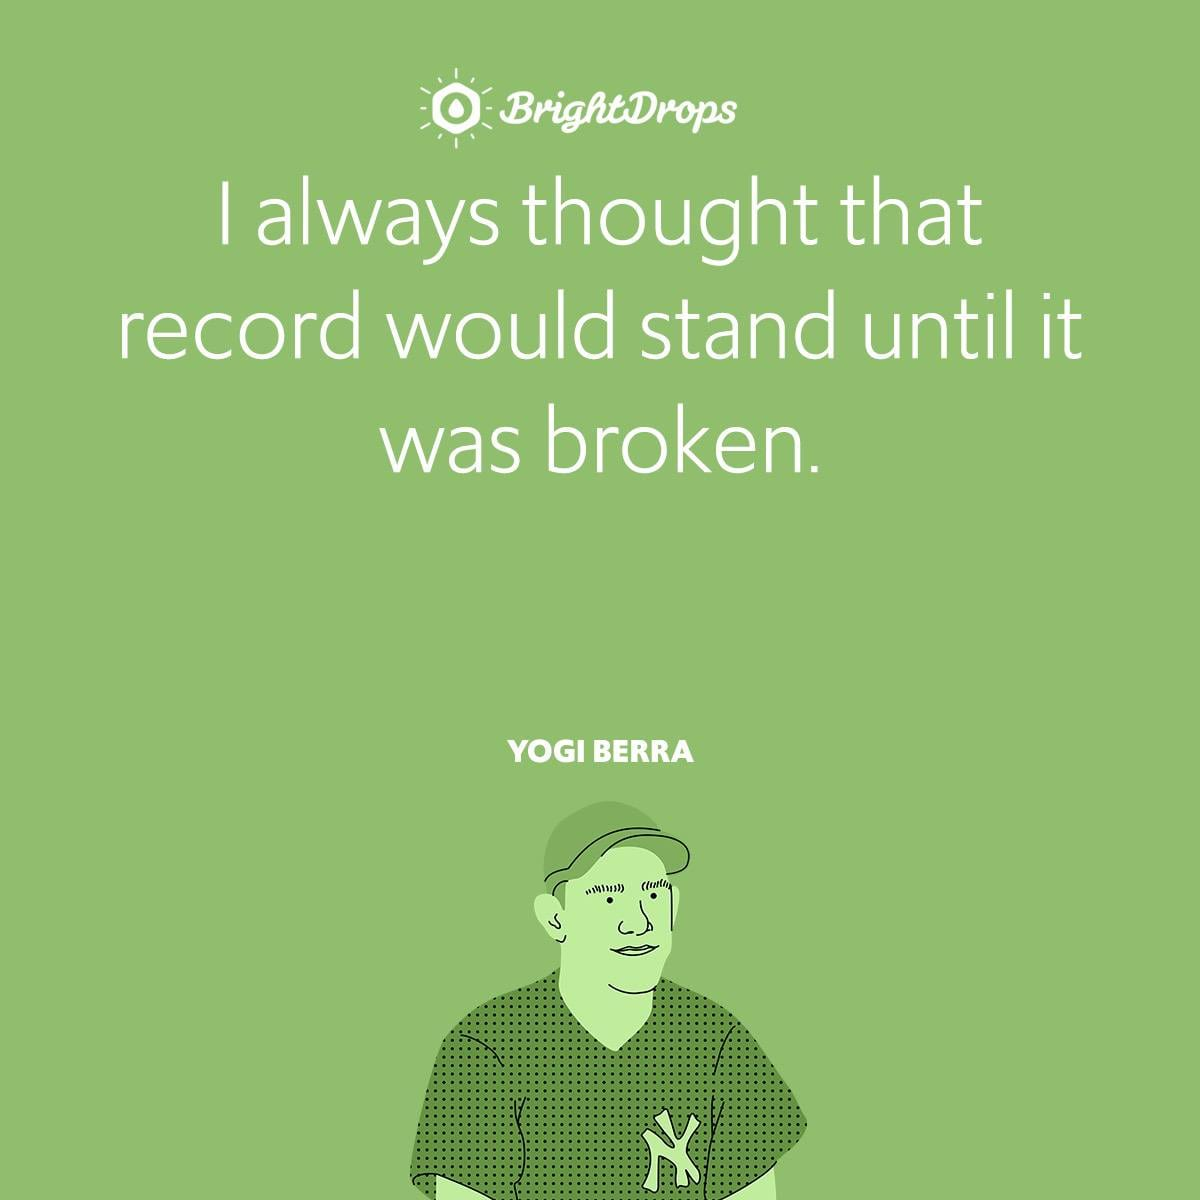 I always thought that record would stand until it was broken.